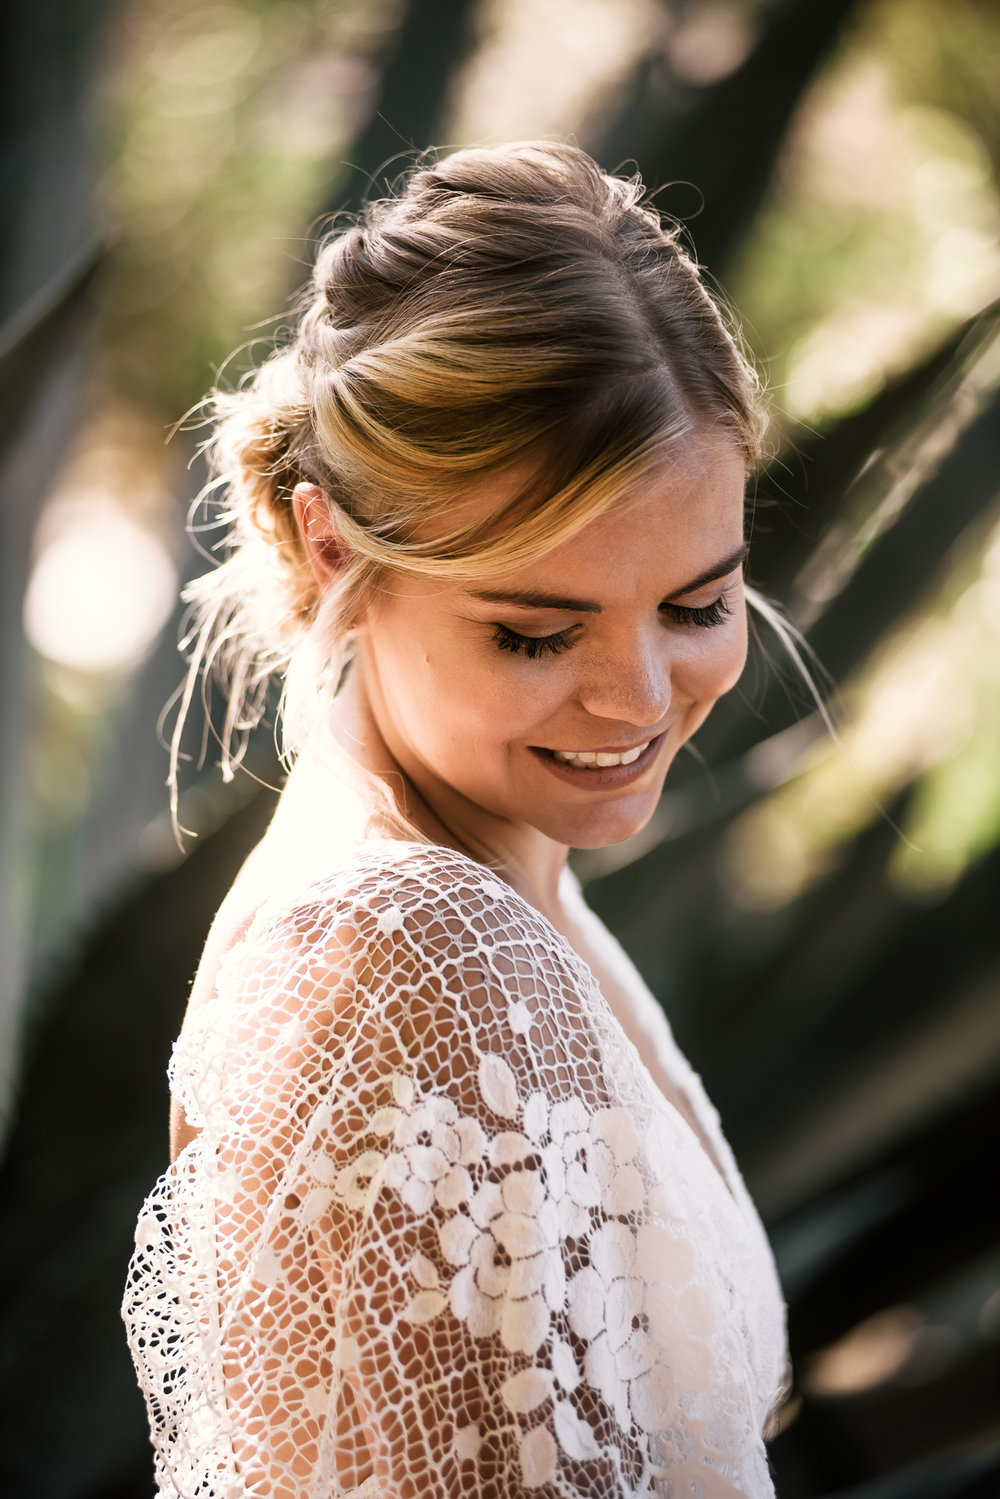 bashful bride poses for a portrait captured by photographer during romantic wedding at the historic Leo Carrillo Ranch in Carlsbad California